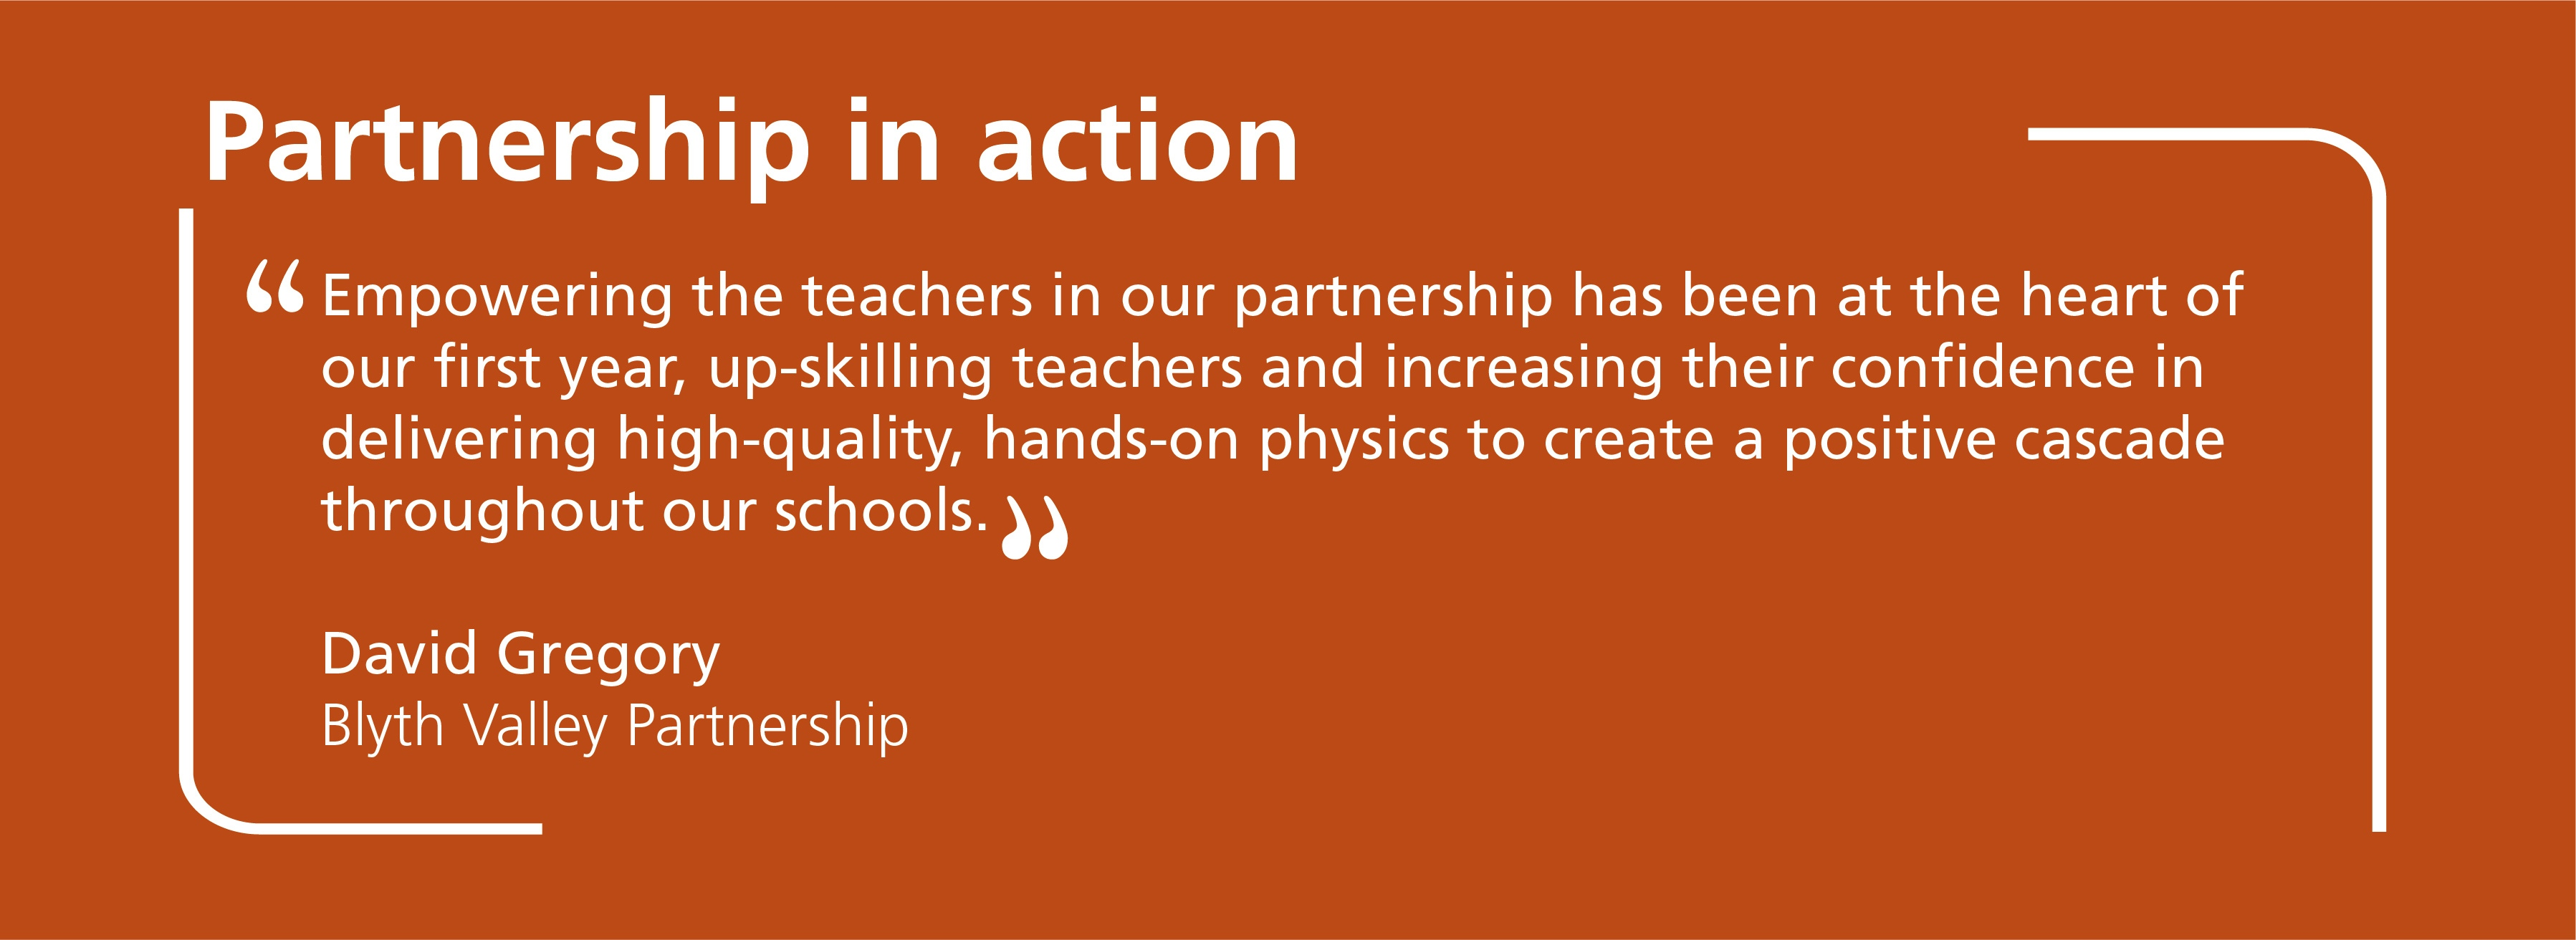 Empowering the teachers in our partnership has been at the heart of our first year, up-skilling teachers and increasing their confidence in delivering high-quality, hands-on physics to create a positive cascade throughout our schools